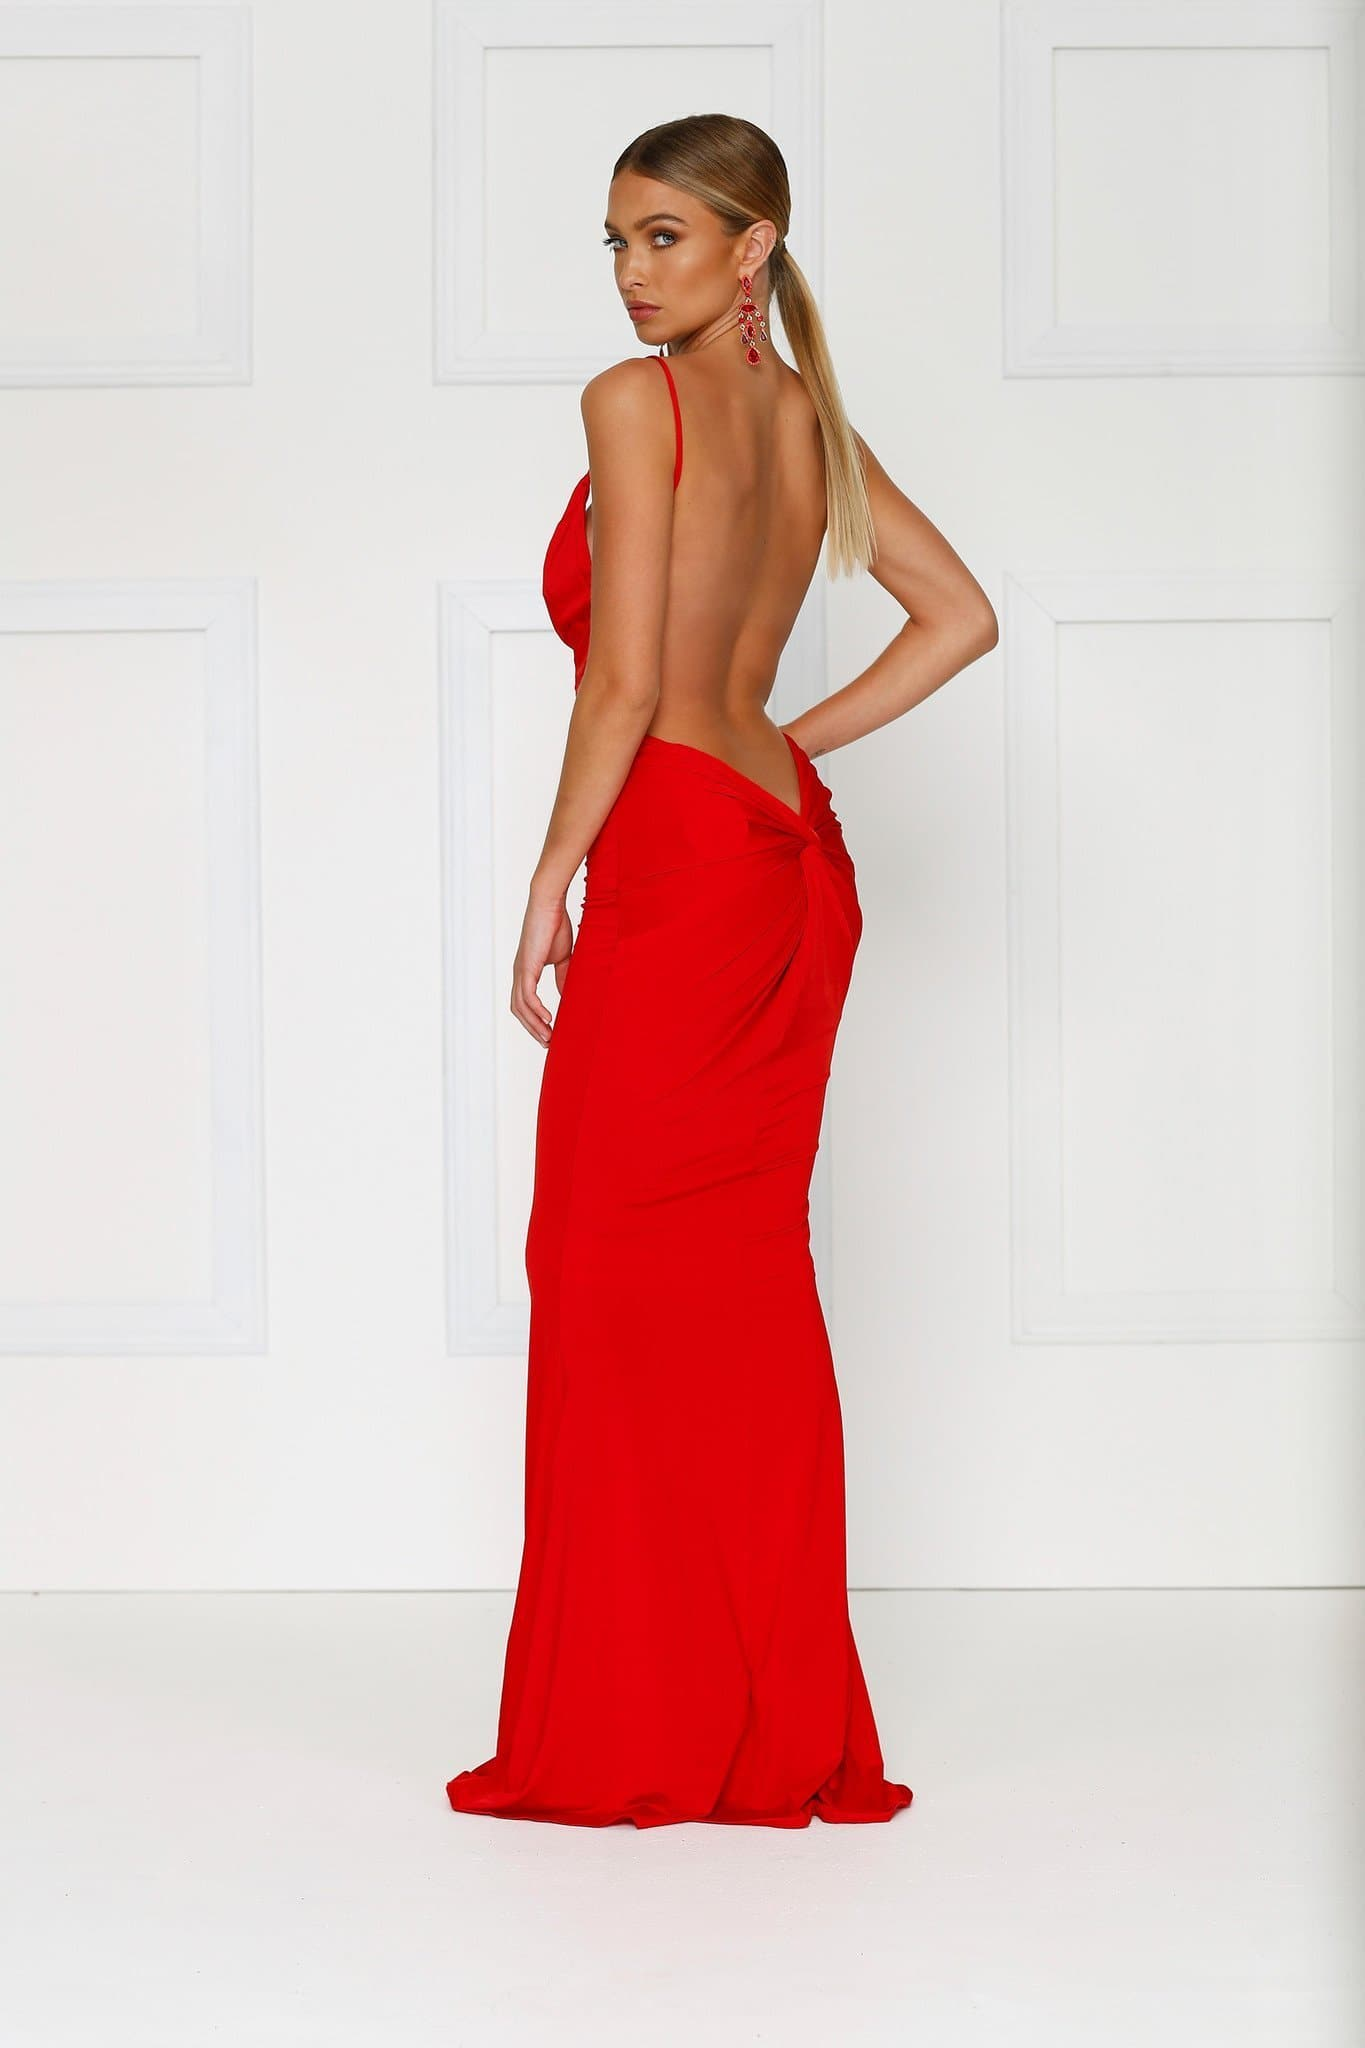 Penelope Bright Red Backless Dress With Back Knot Design